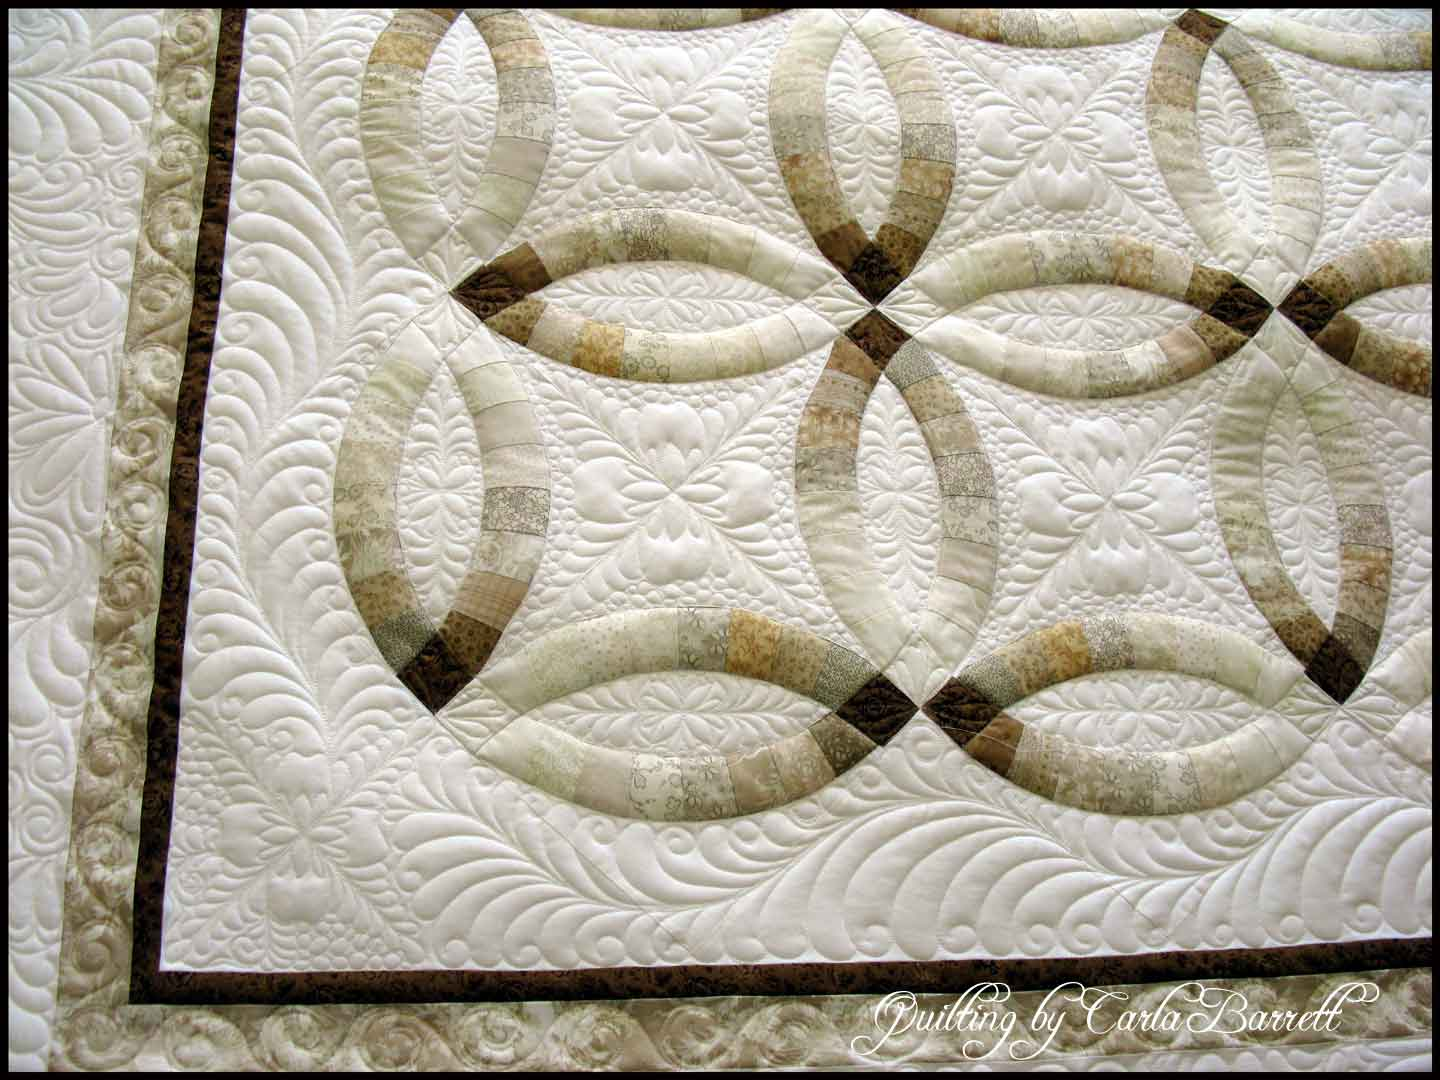 wedding ring quilt | Carla Barrett